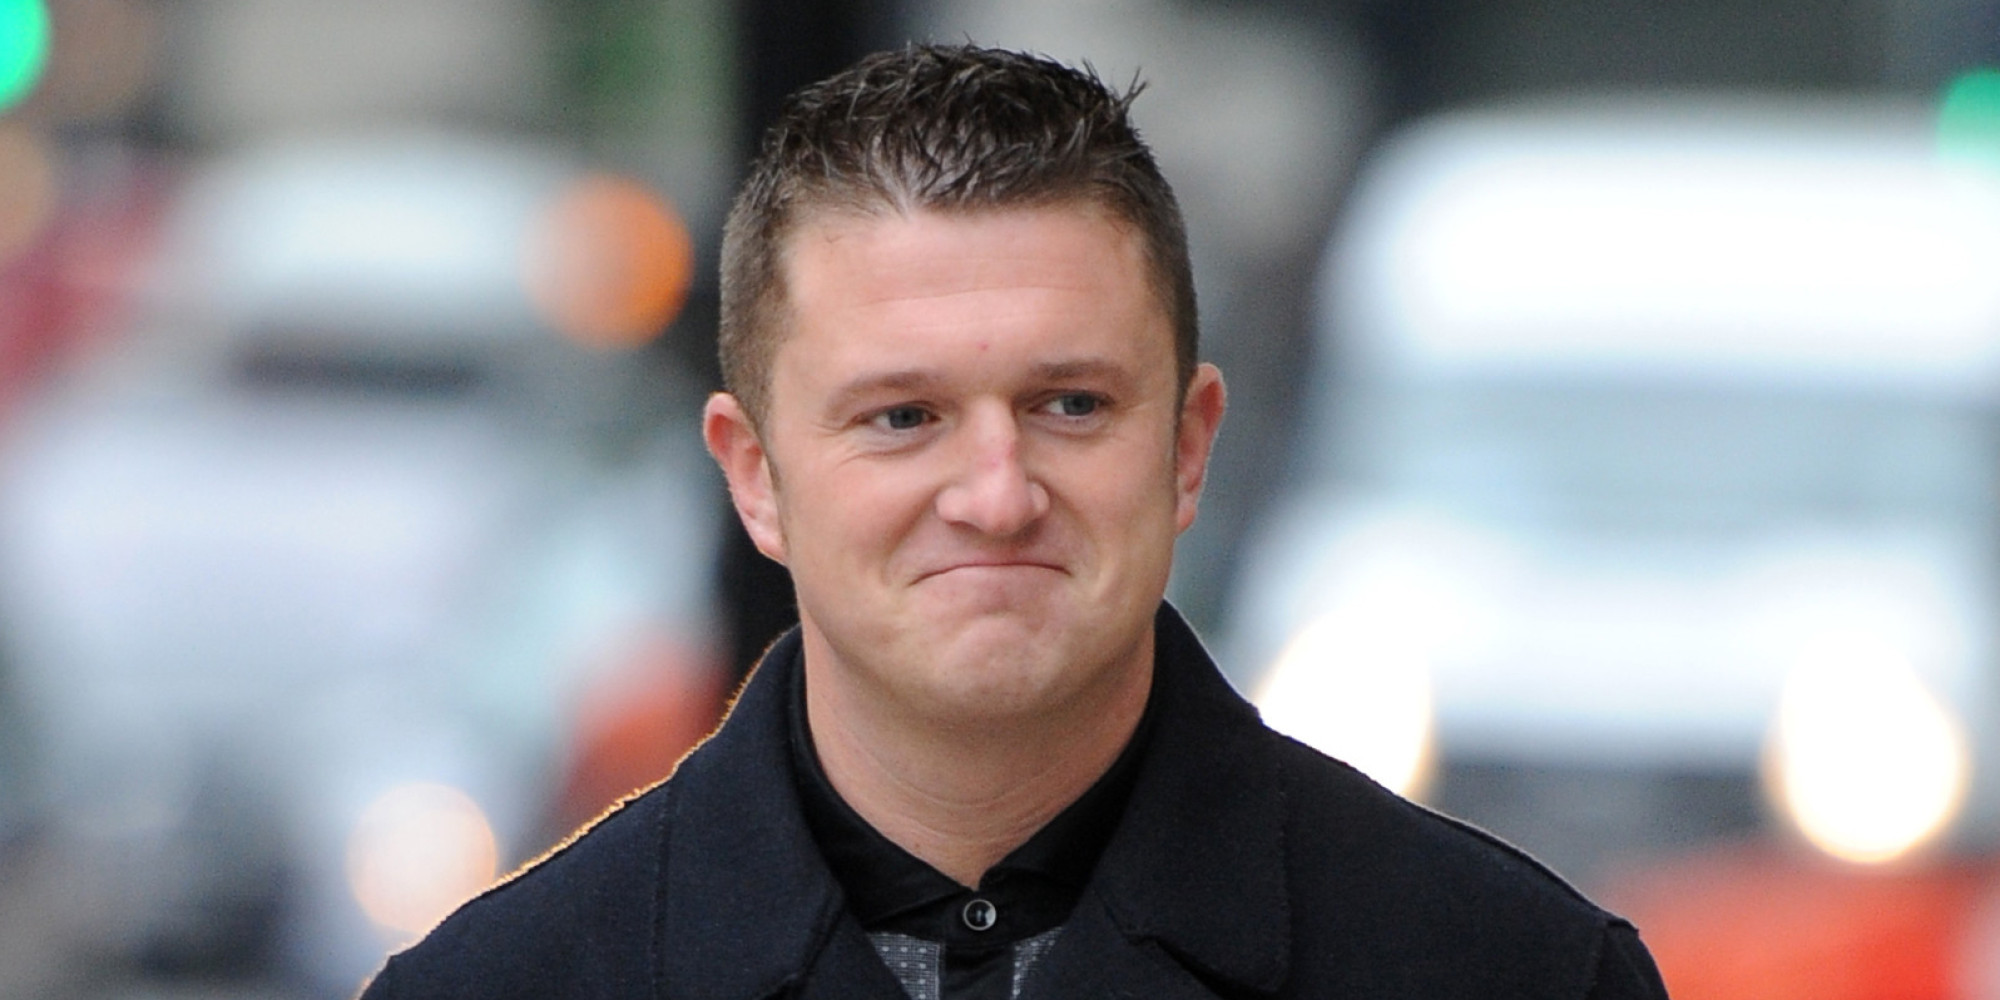 tommy robinson - photo #5